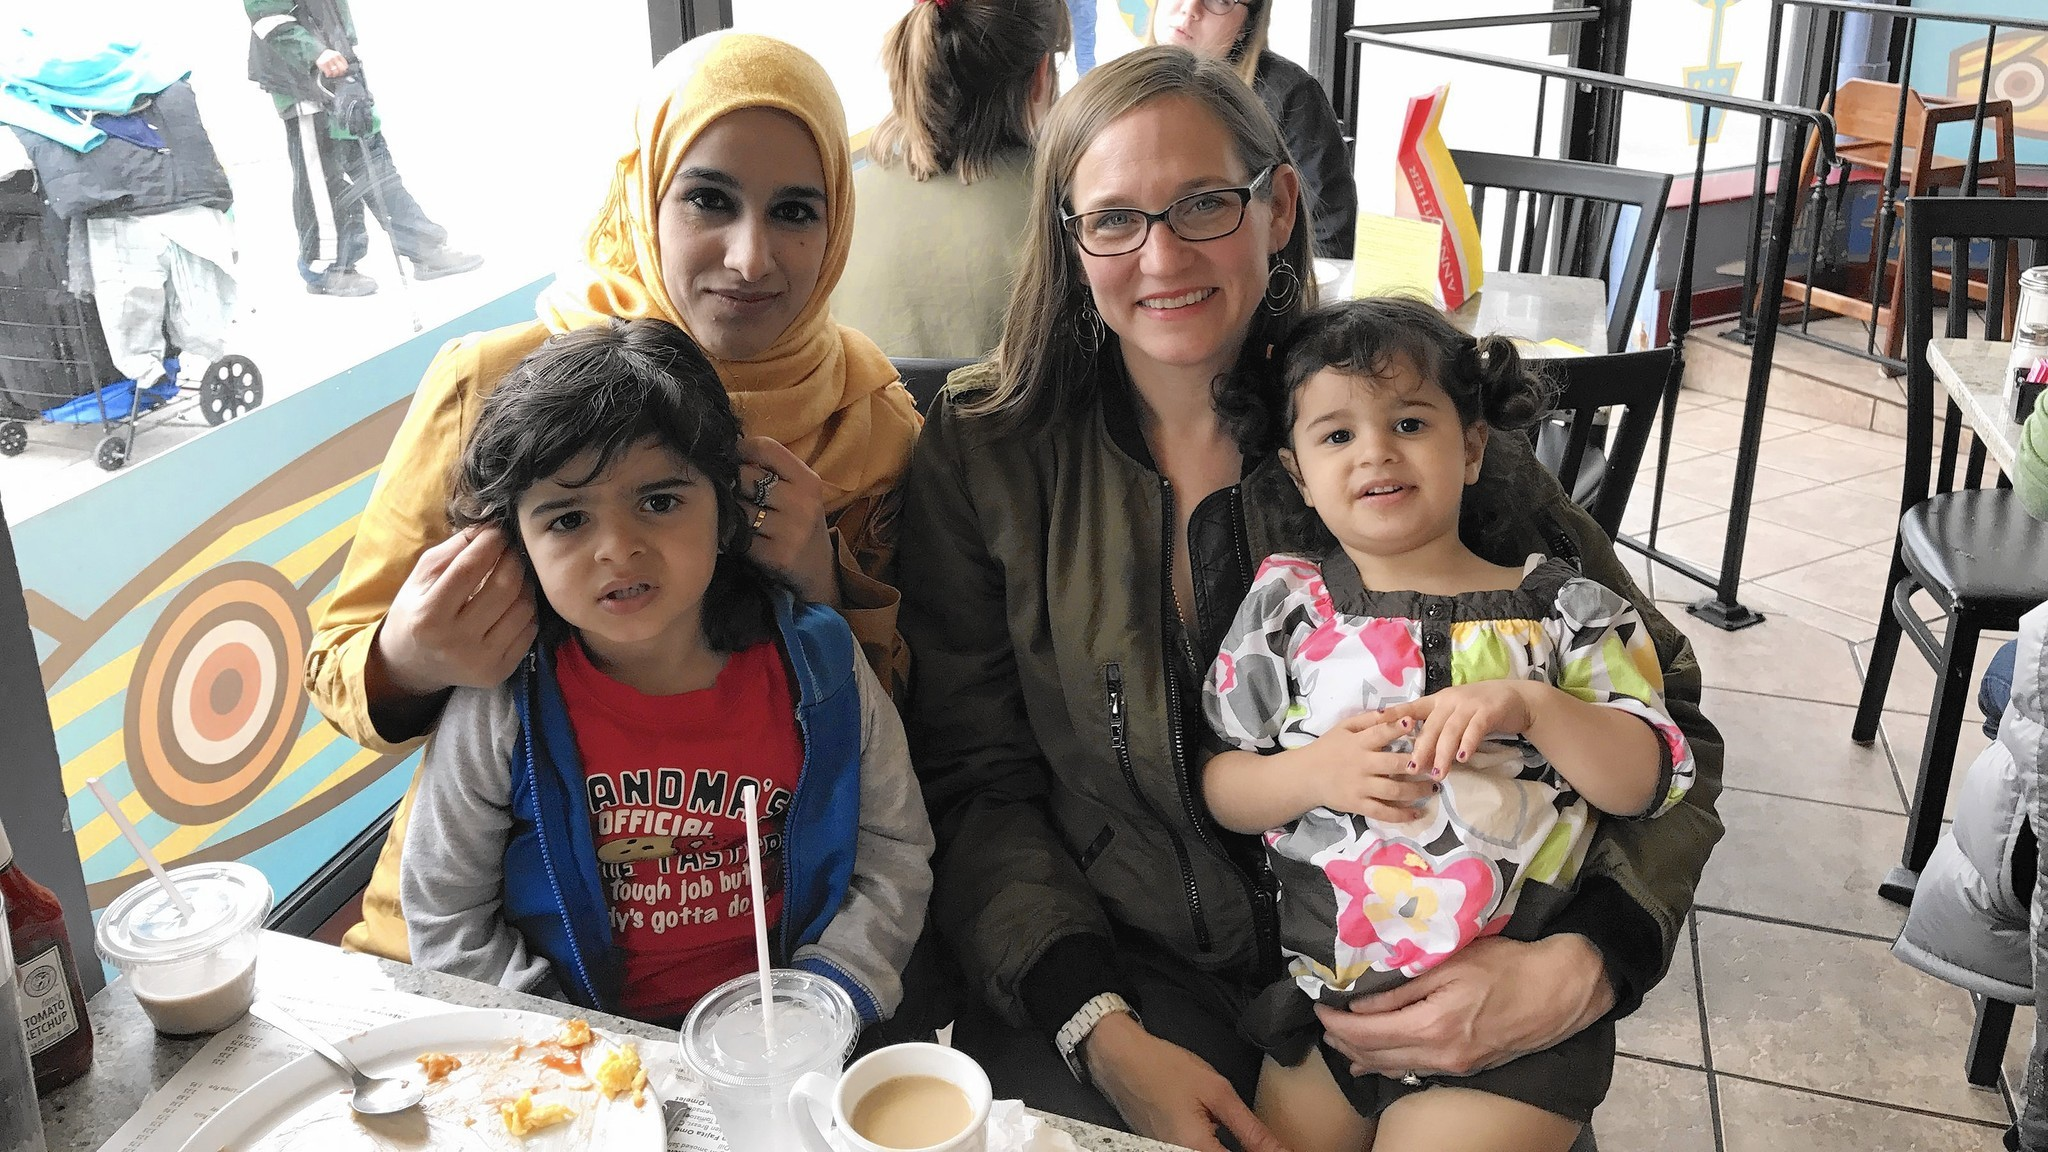 What adopting a syrian refugee family taught me about friendship what adopting a syrian refugee family taught me about friendship chicago tribune ccuart Choice Image